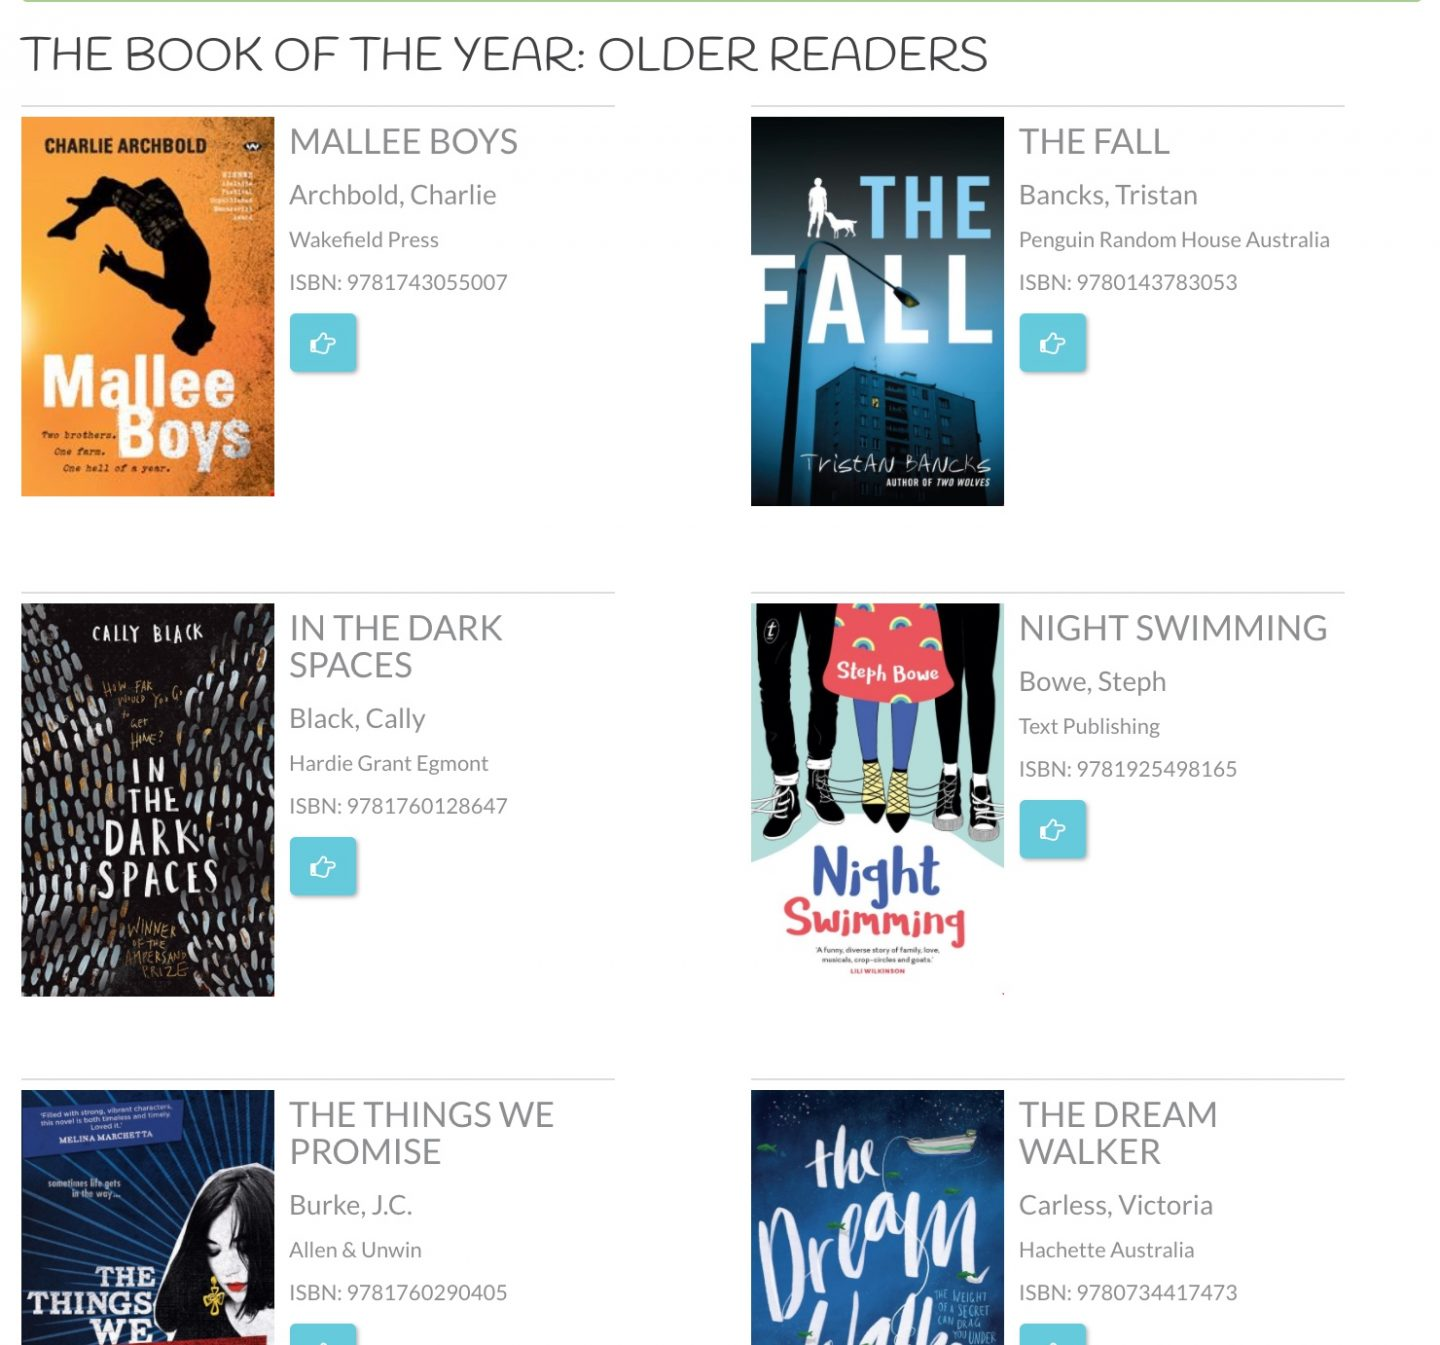 CBCA Book of the Year 2018